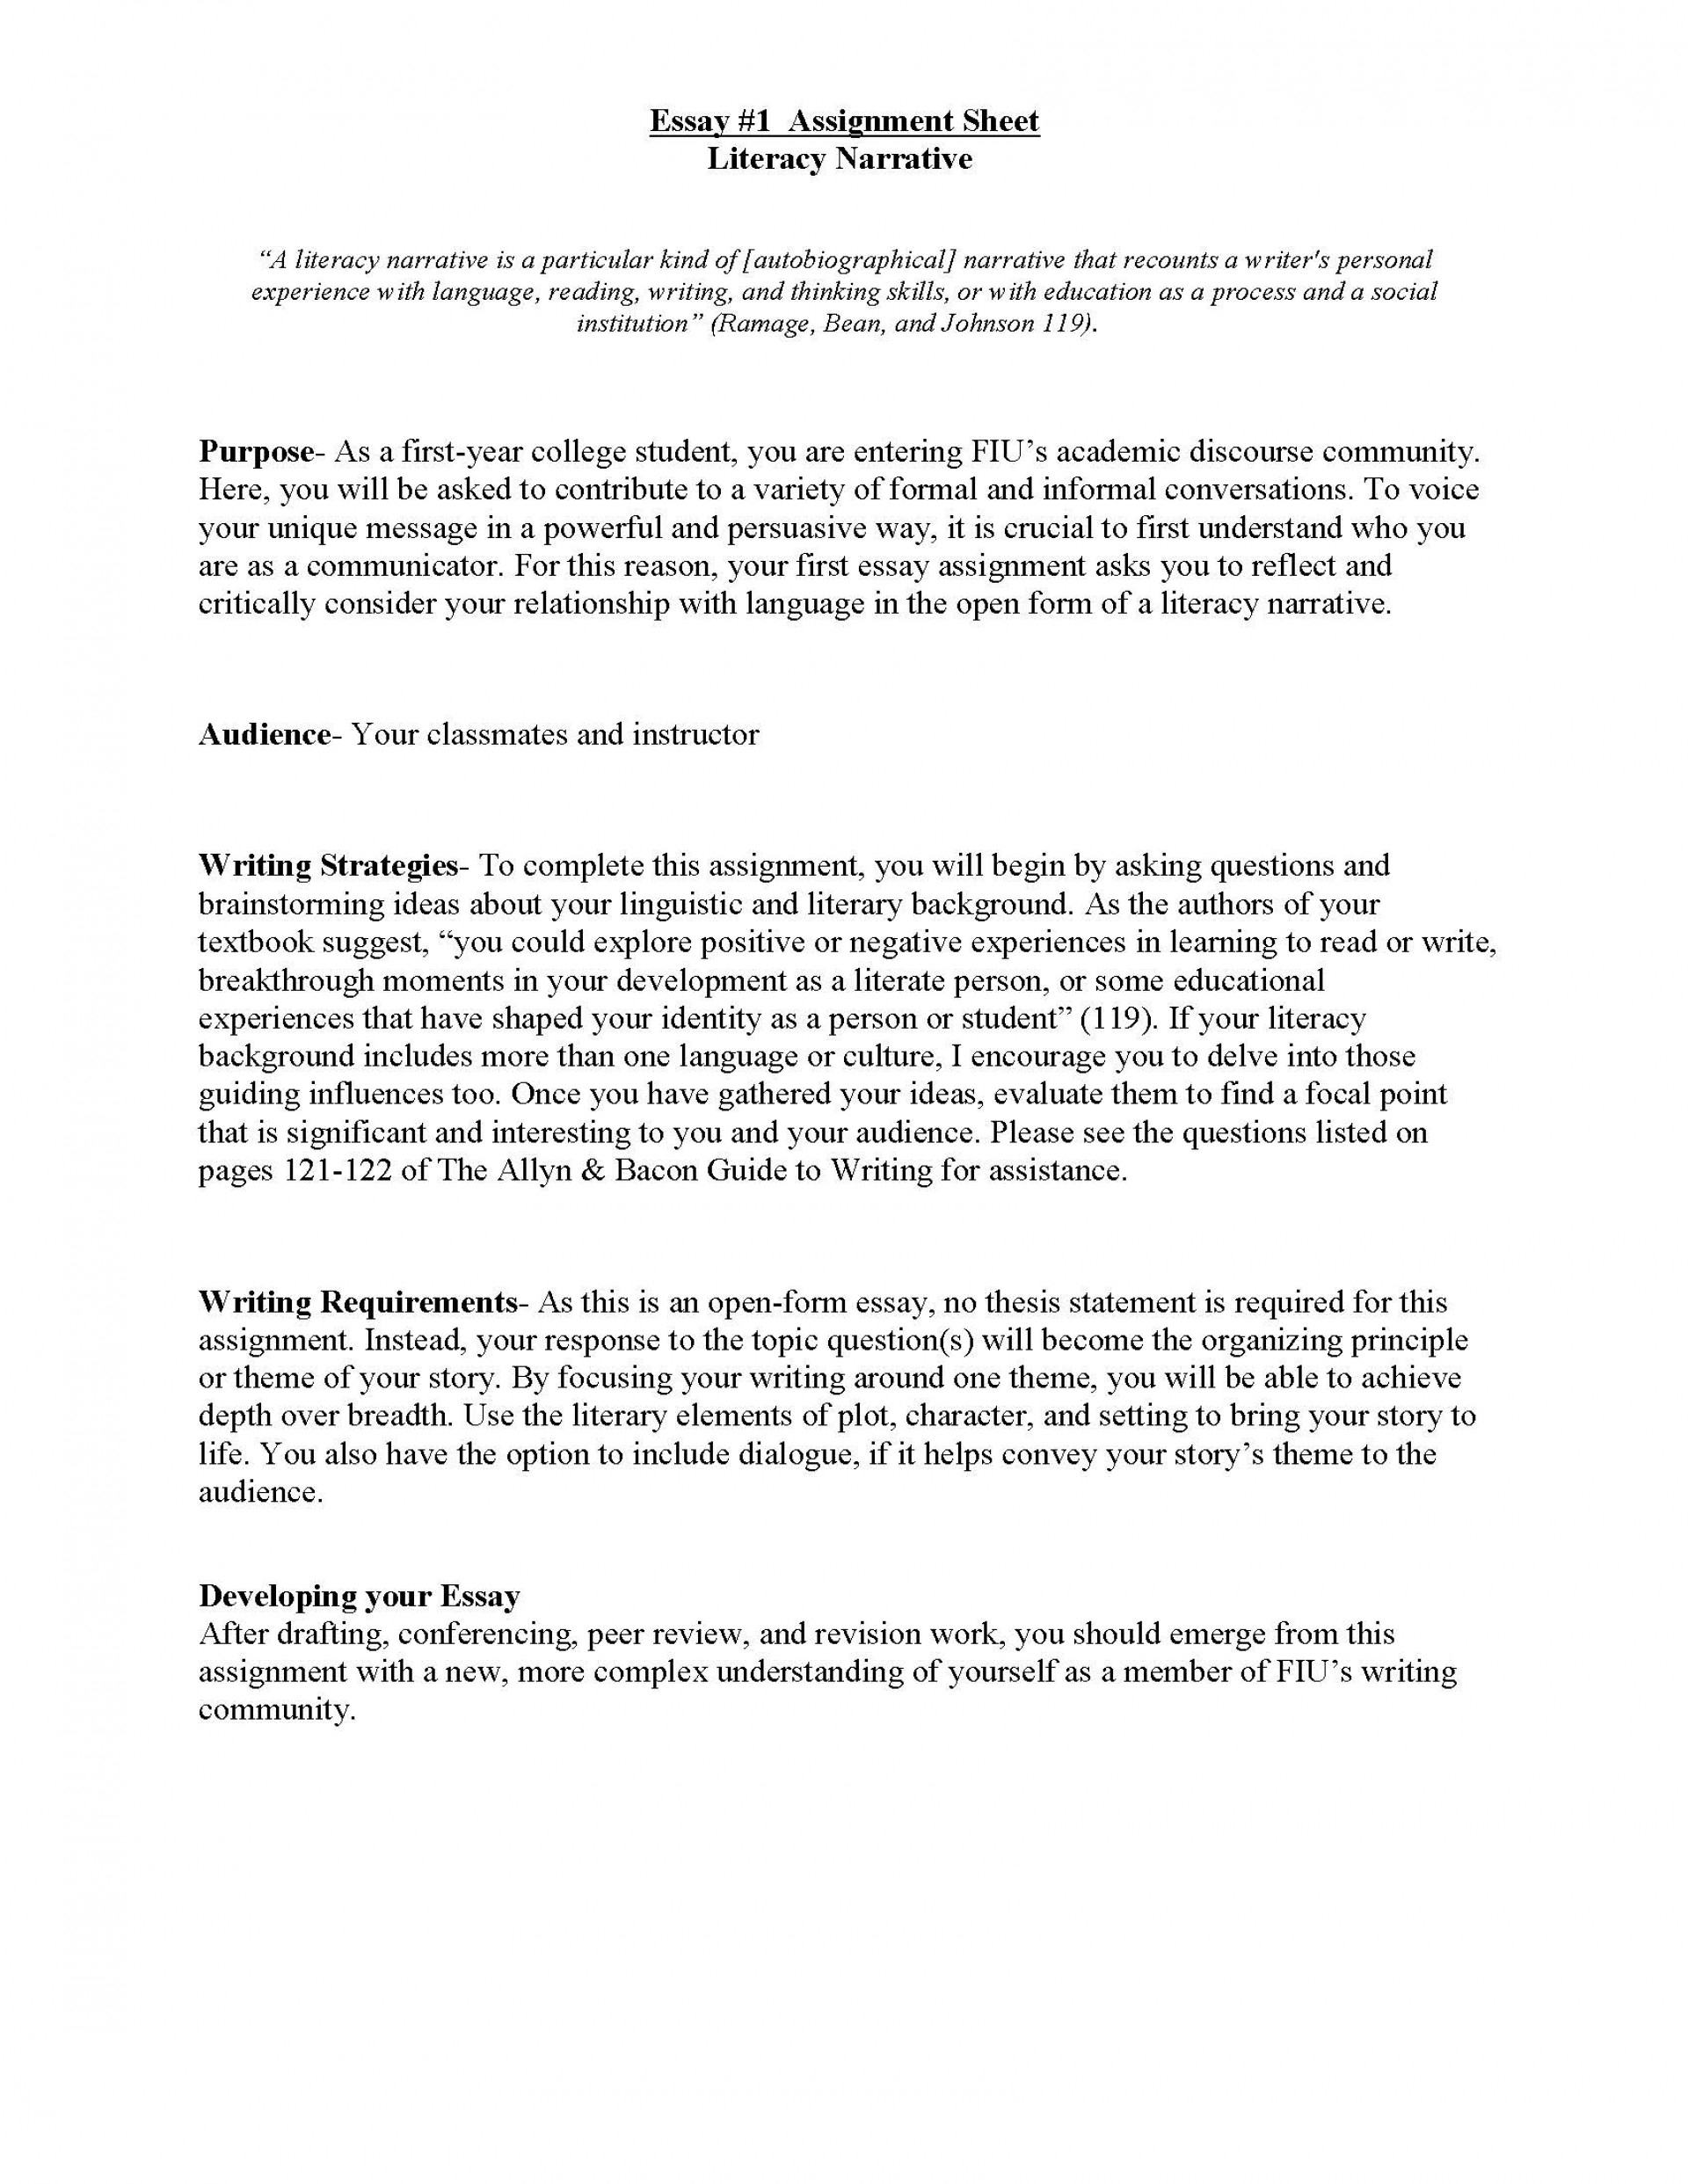 021 Essay Example Literacy Narrative Unit Assignment Spring 2012 Page 1 Essays Top Examples Spm Short About Life College 1920